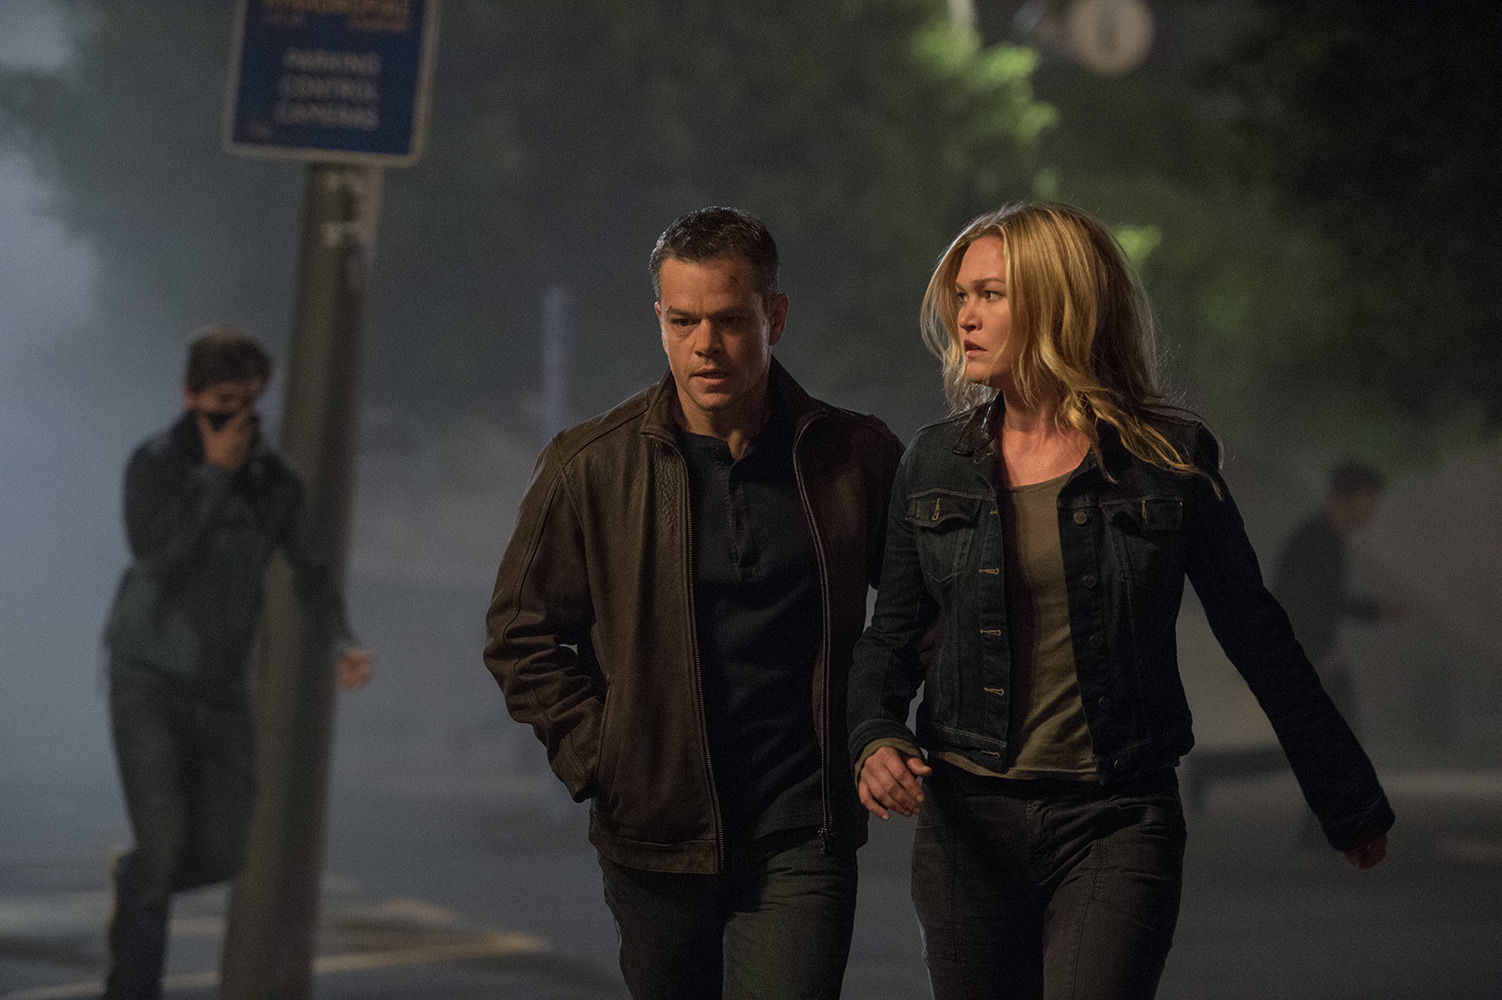 Now on DVD: Matt Damon, Paul Greengrass and Julia Stiles return for 'Jason Bourne'